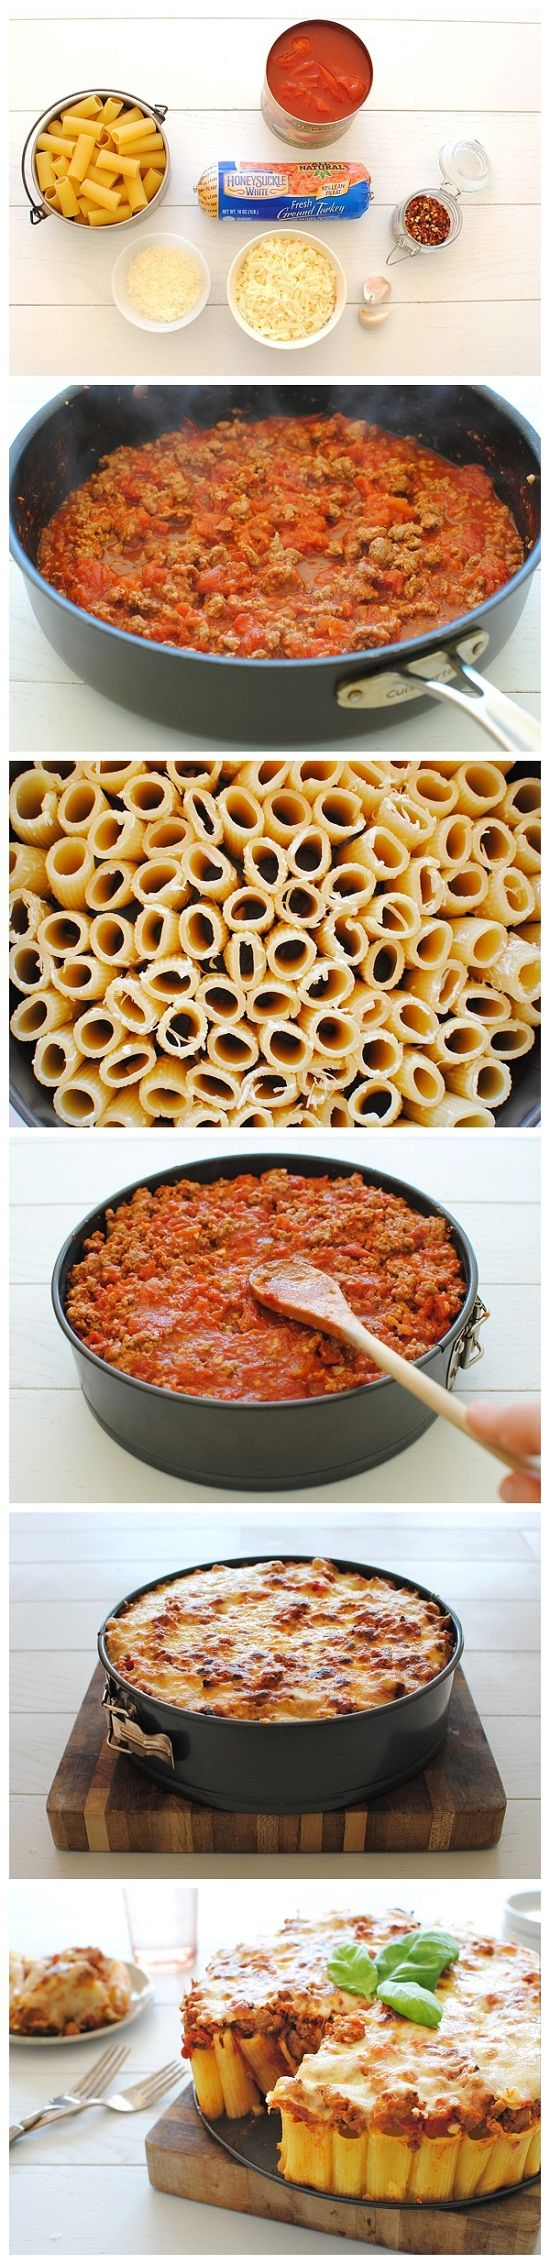 Rigatoni Pasta Pie--- looks good!!!!